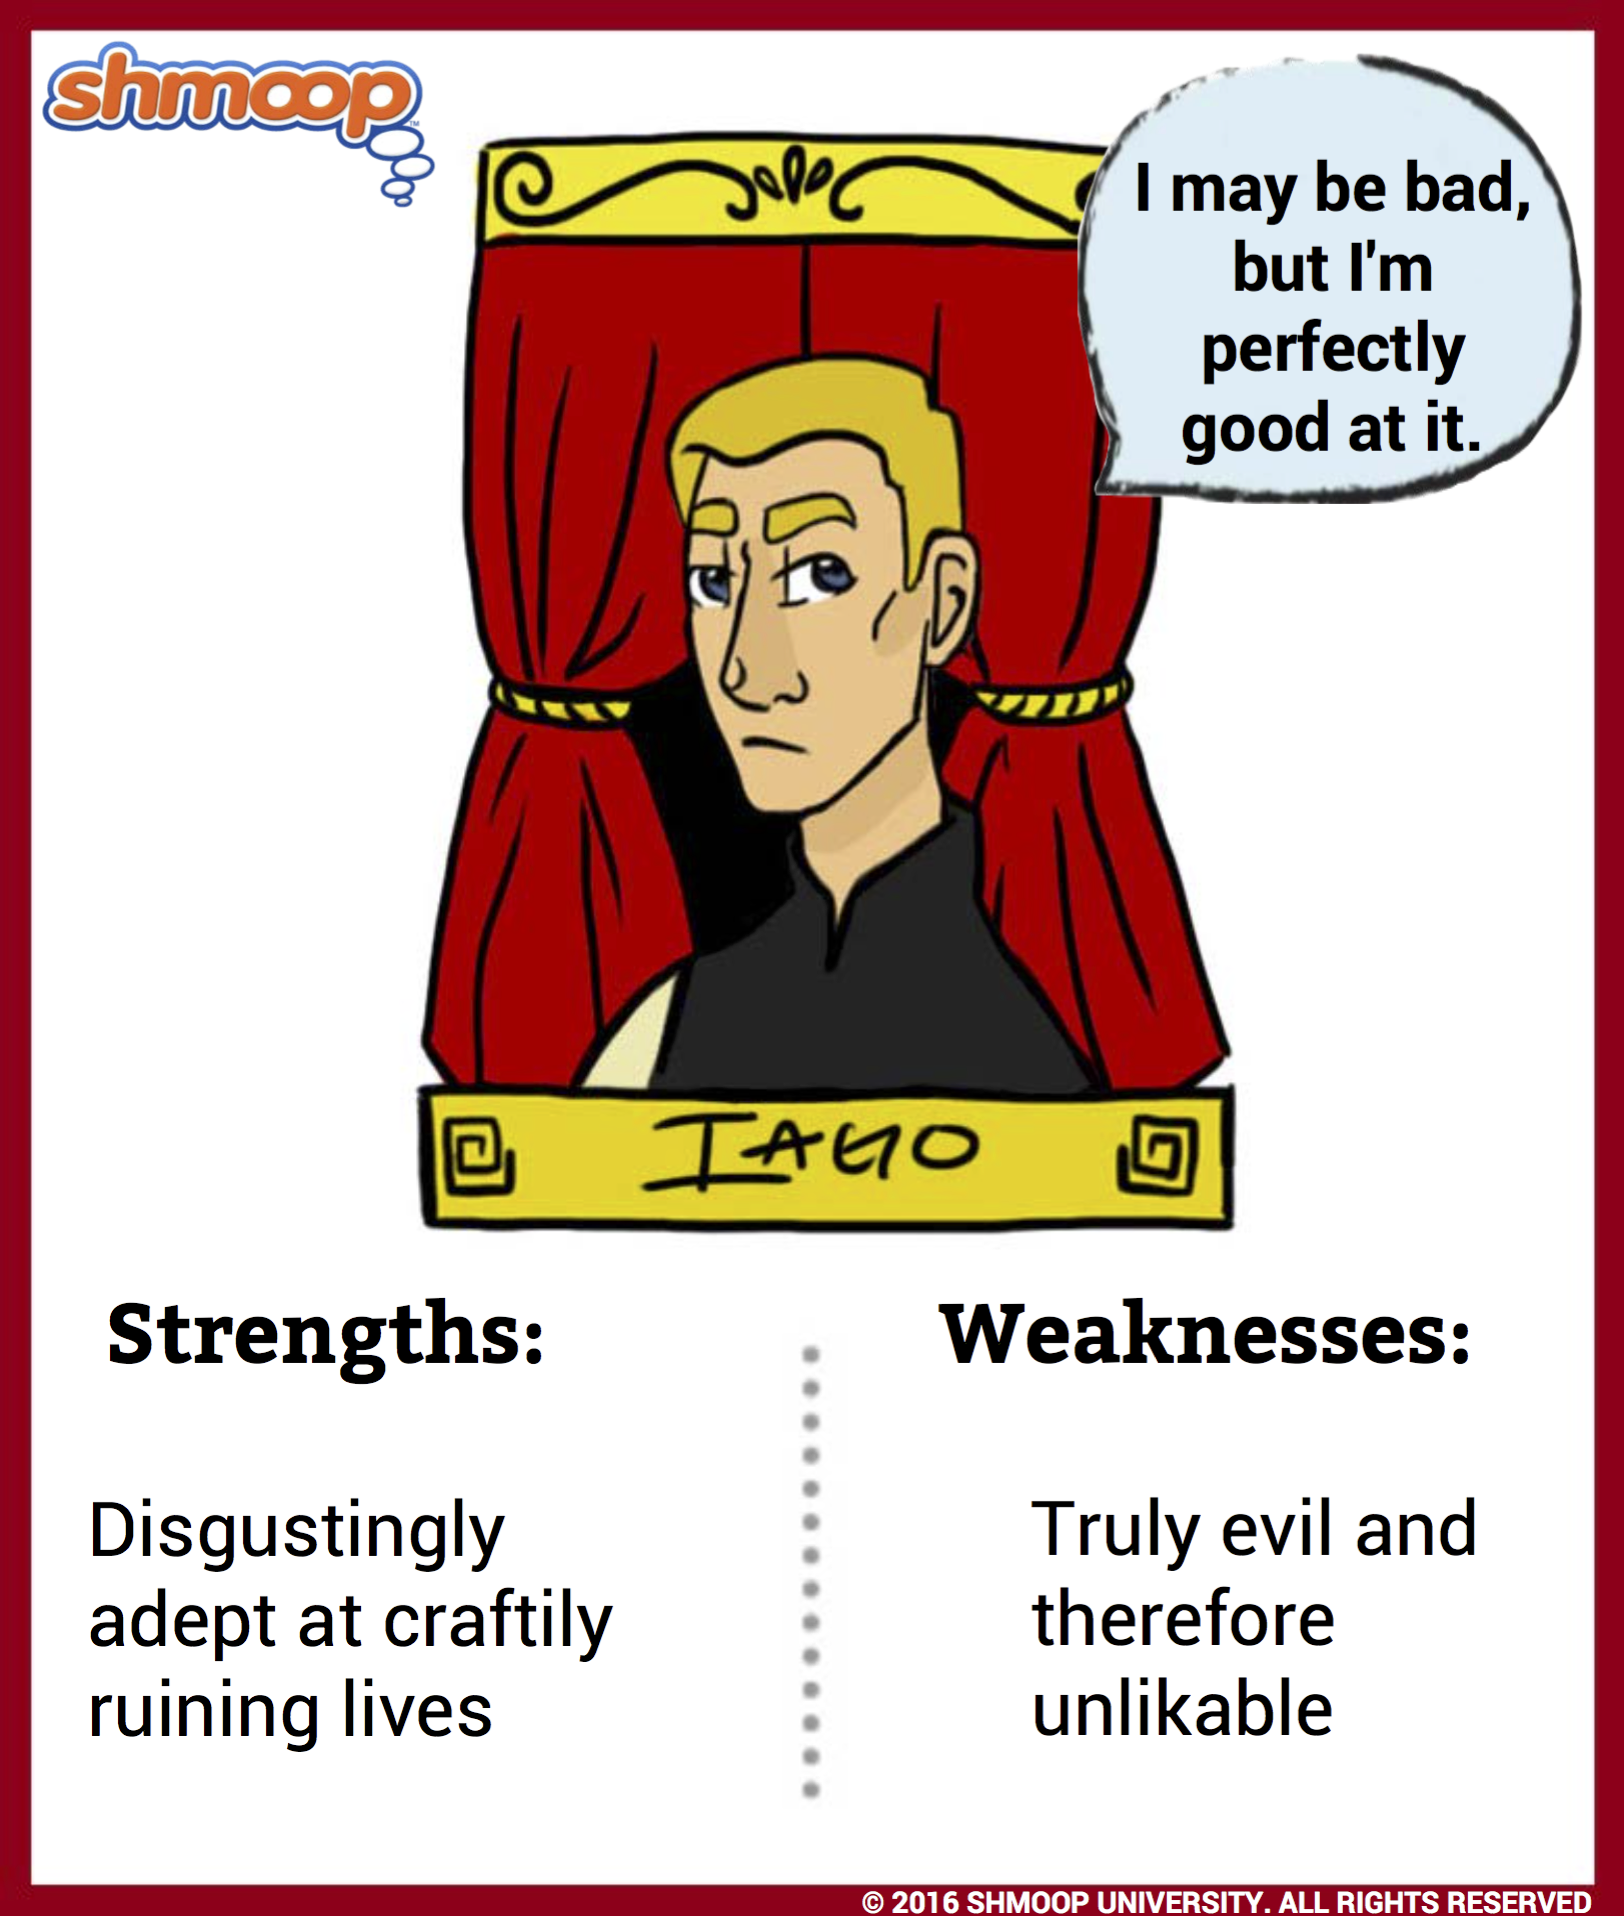 Character analysis on othello